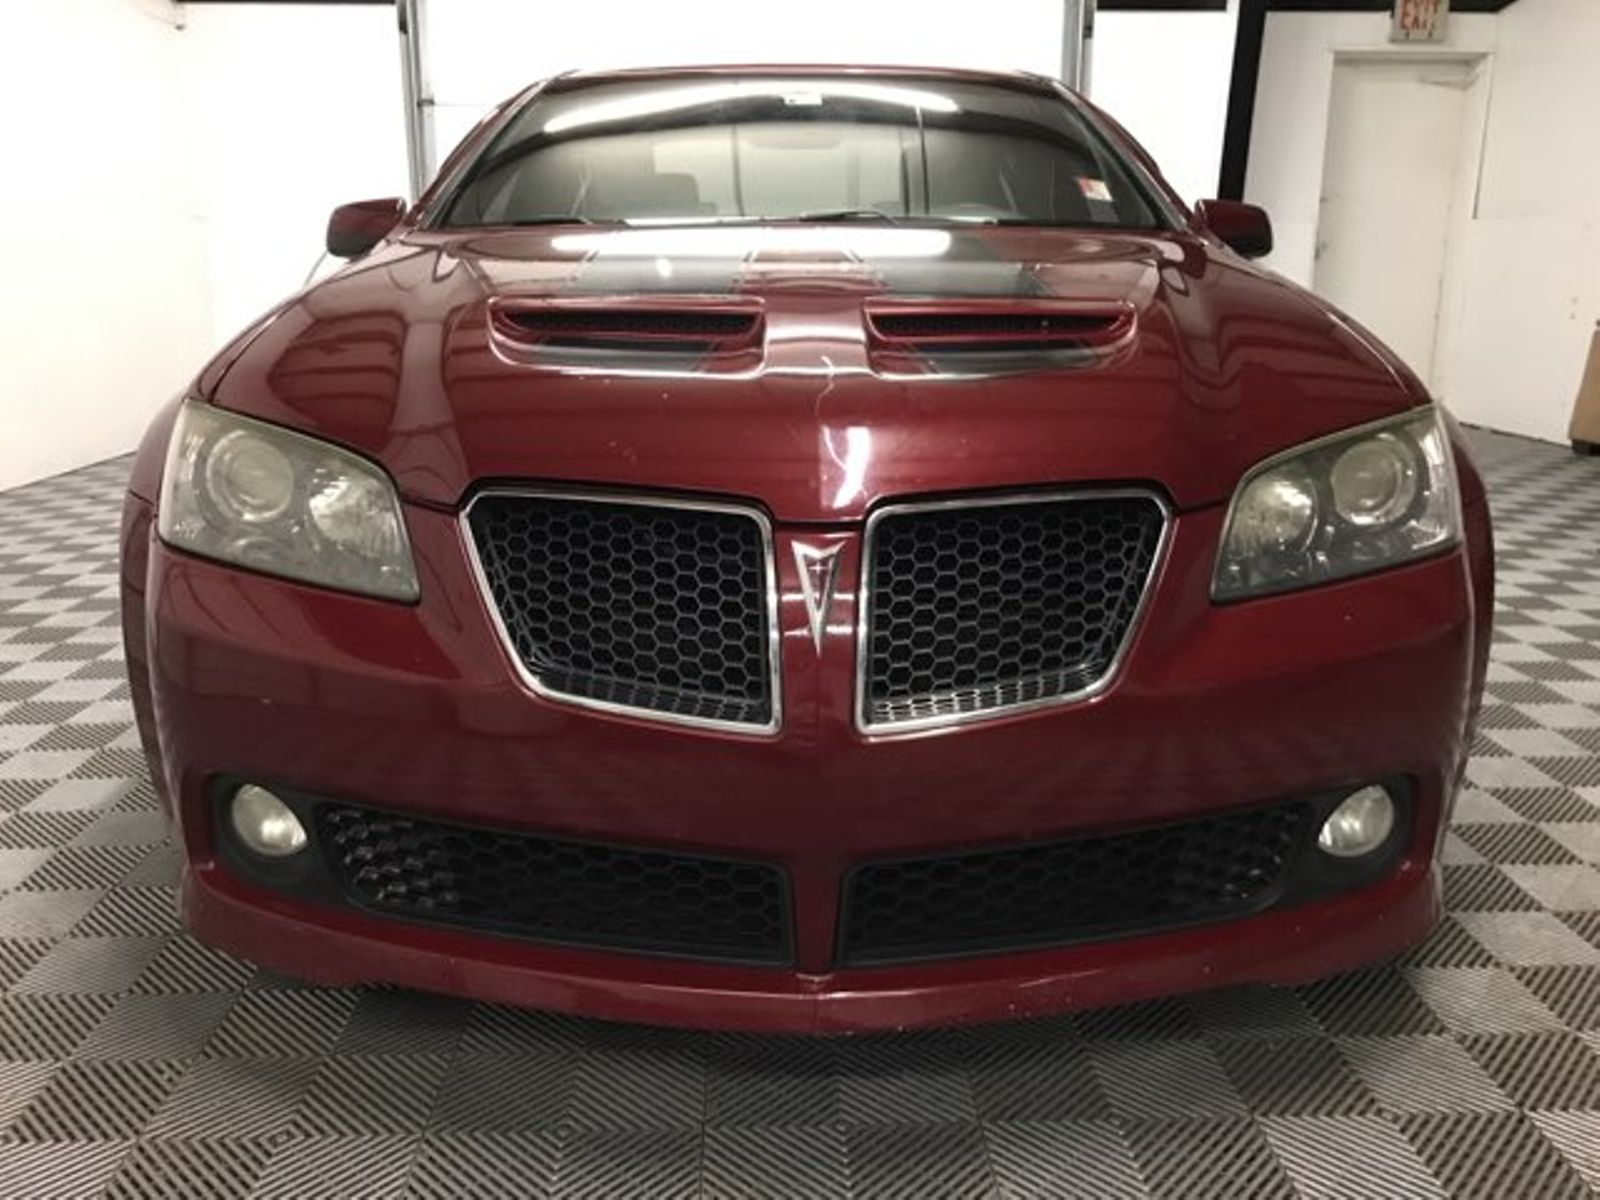 2009 Pontiac G8 Gt Leather Sunroof Remote Start City Oklahoma Raven Starter For Infiniti M35 Auto Sales In